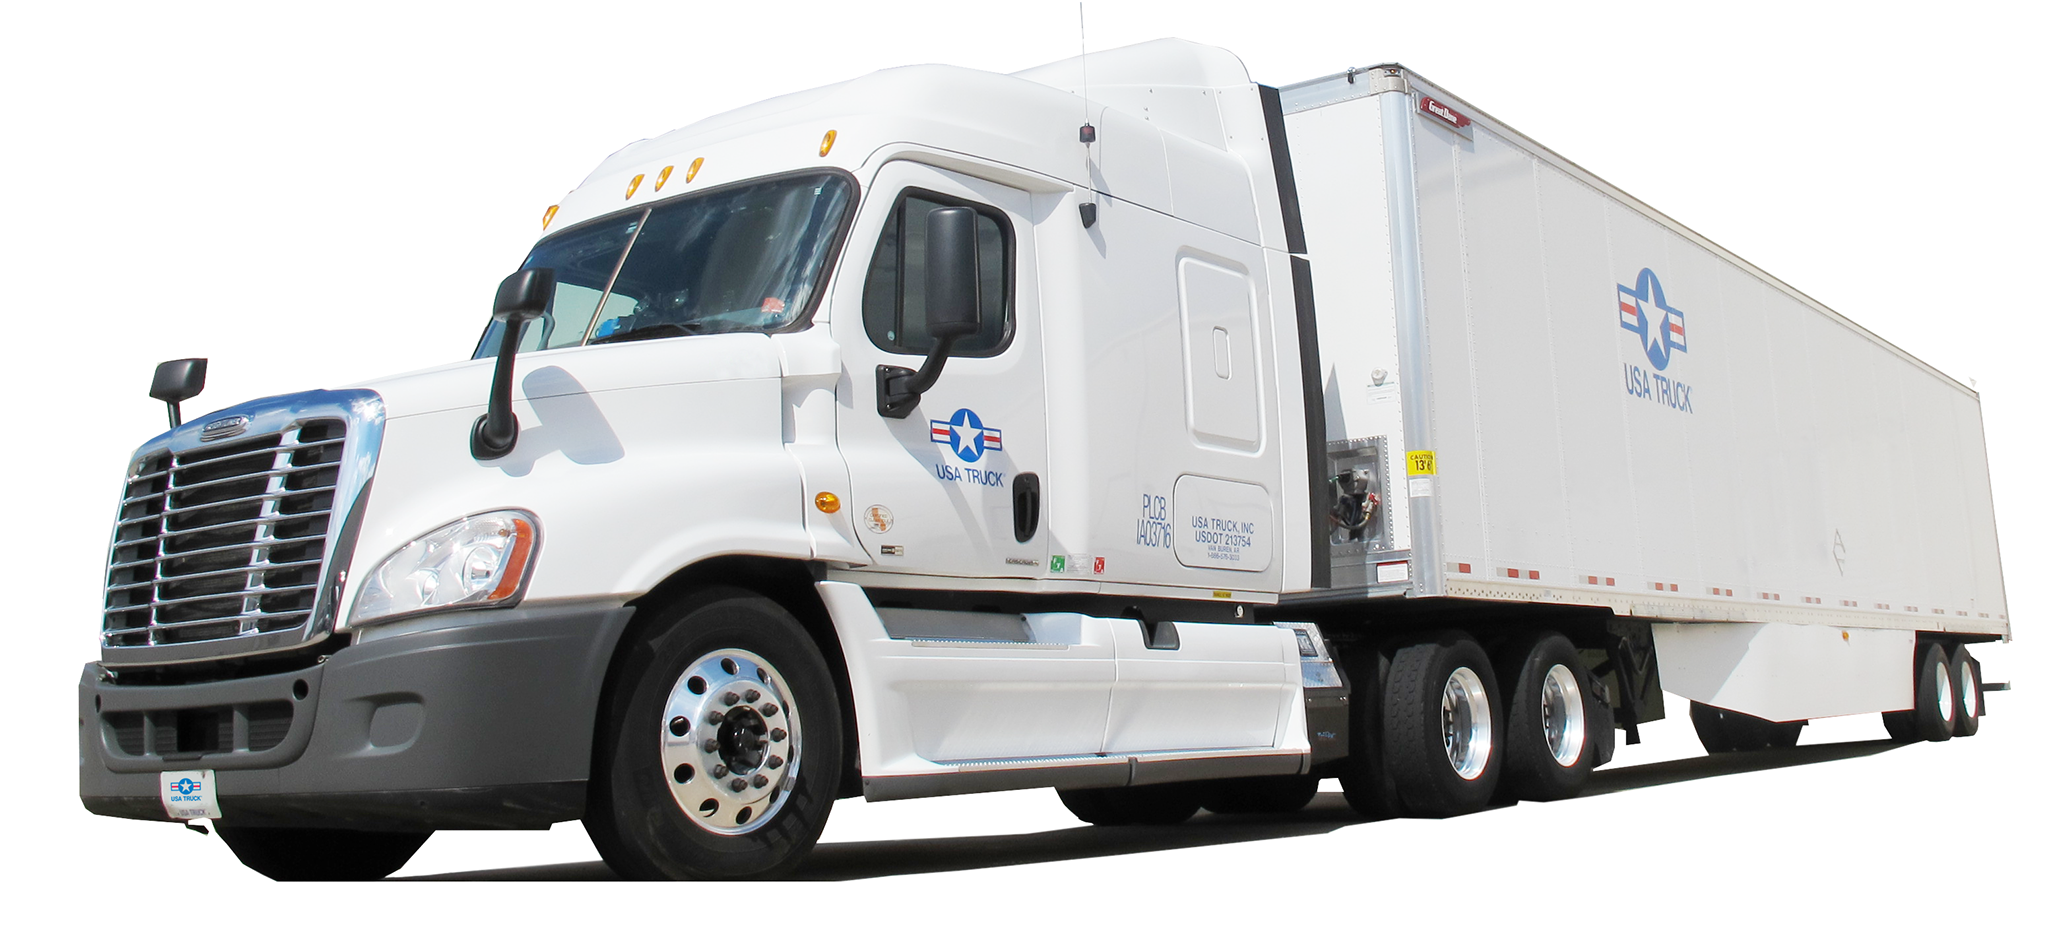 usa truck boosts mileage pay for independent contractors #17271